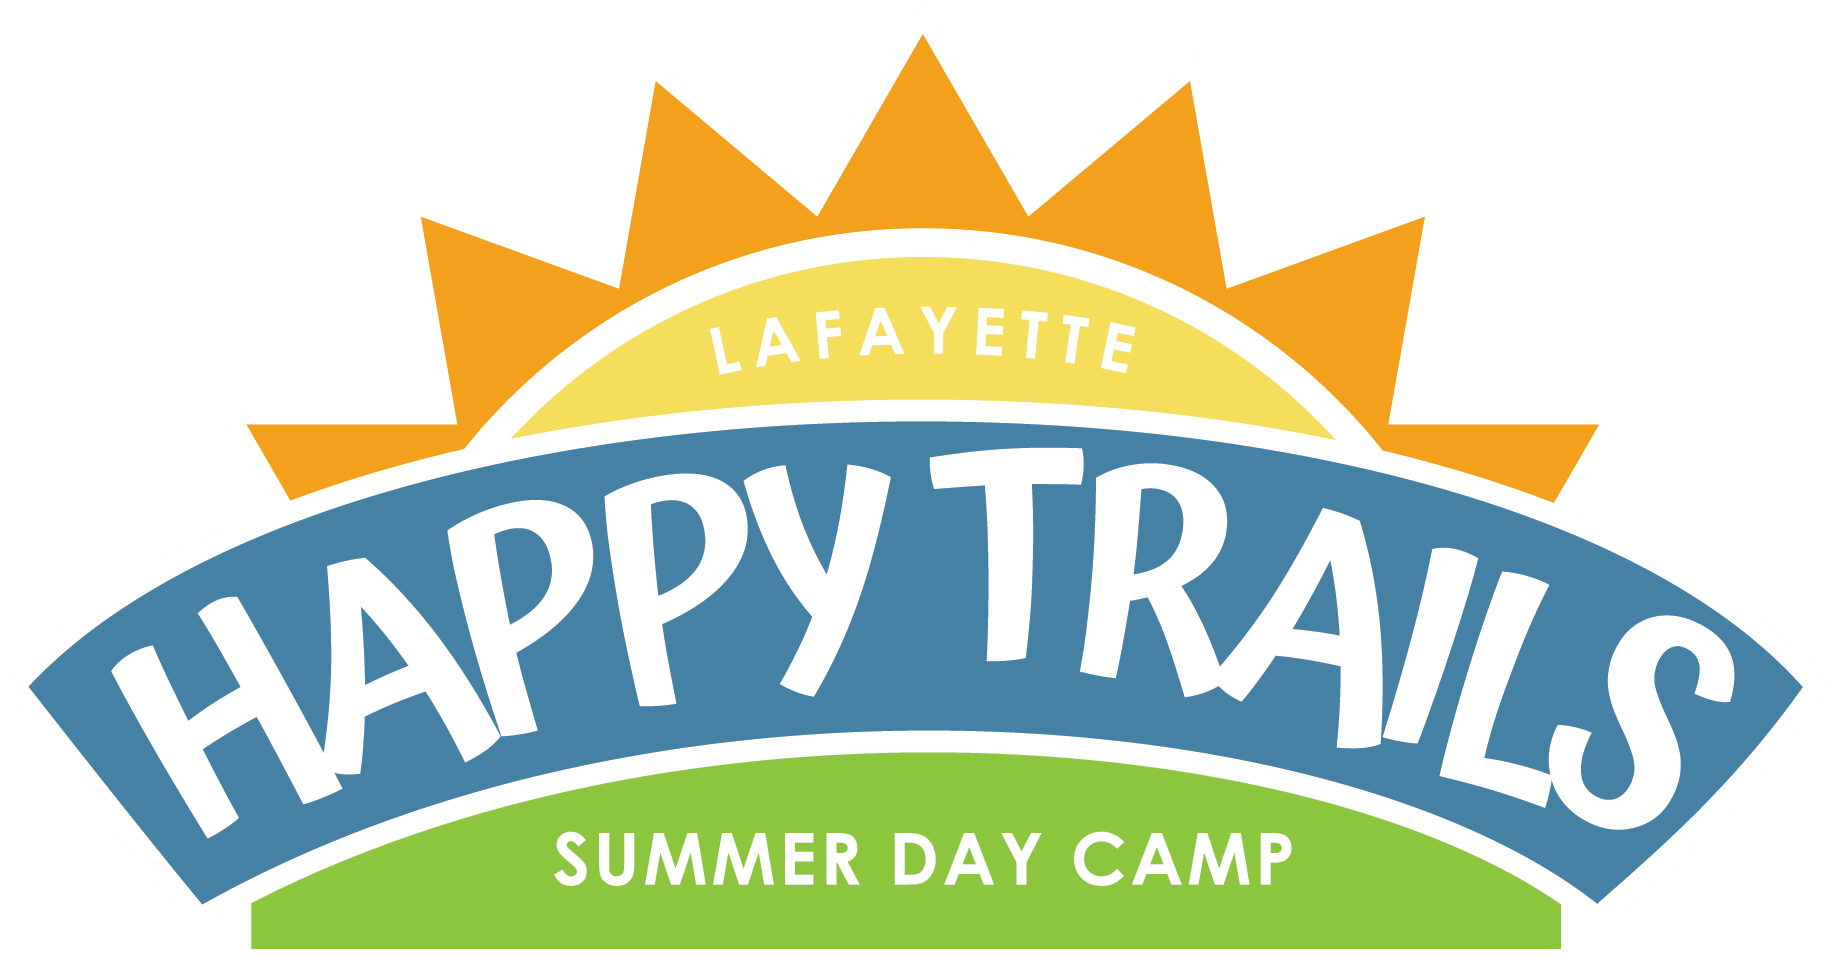 Lafayette Happy Trails Summer Day Camp